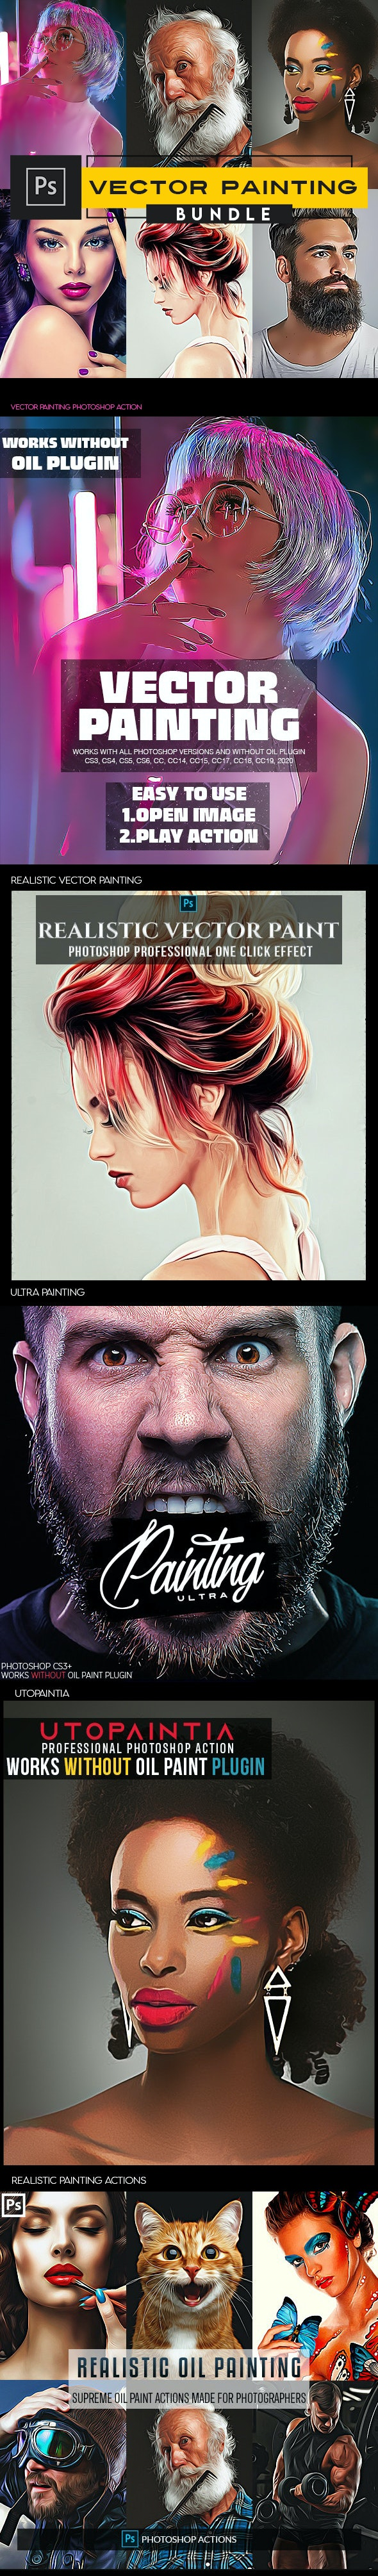 Vector Painting Photoshop Actions - Photo Effects Actions